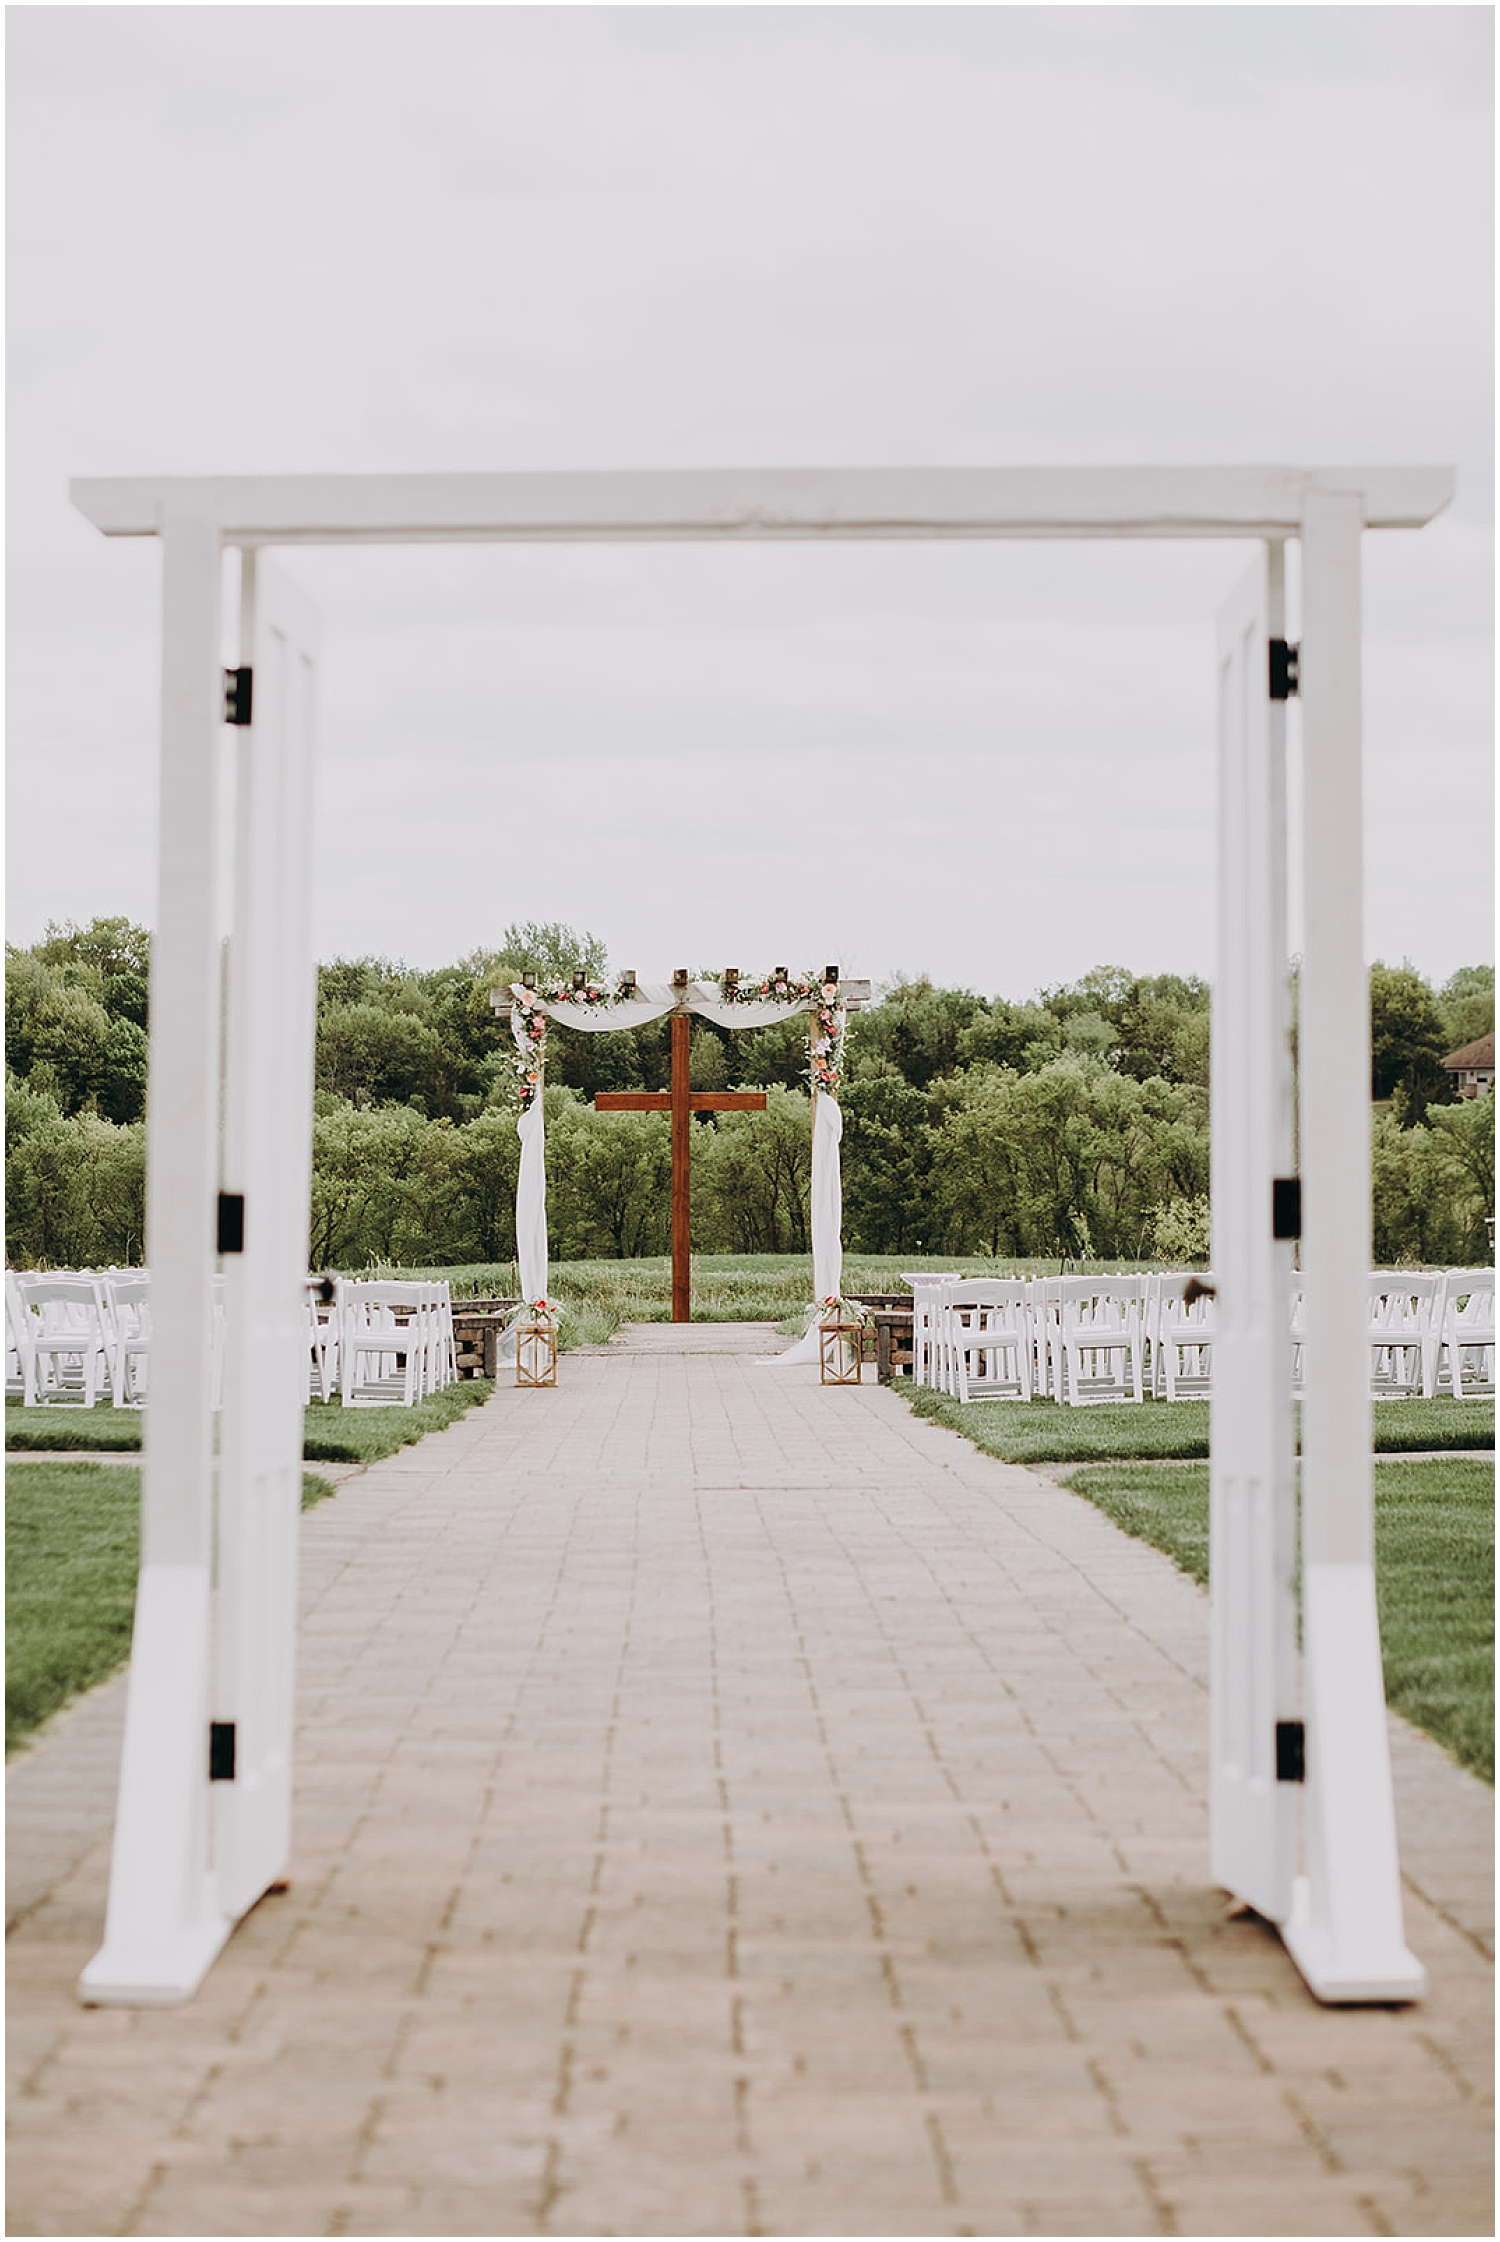 Outdoor wedding ceremony at The Outpost Center